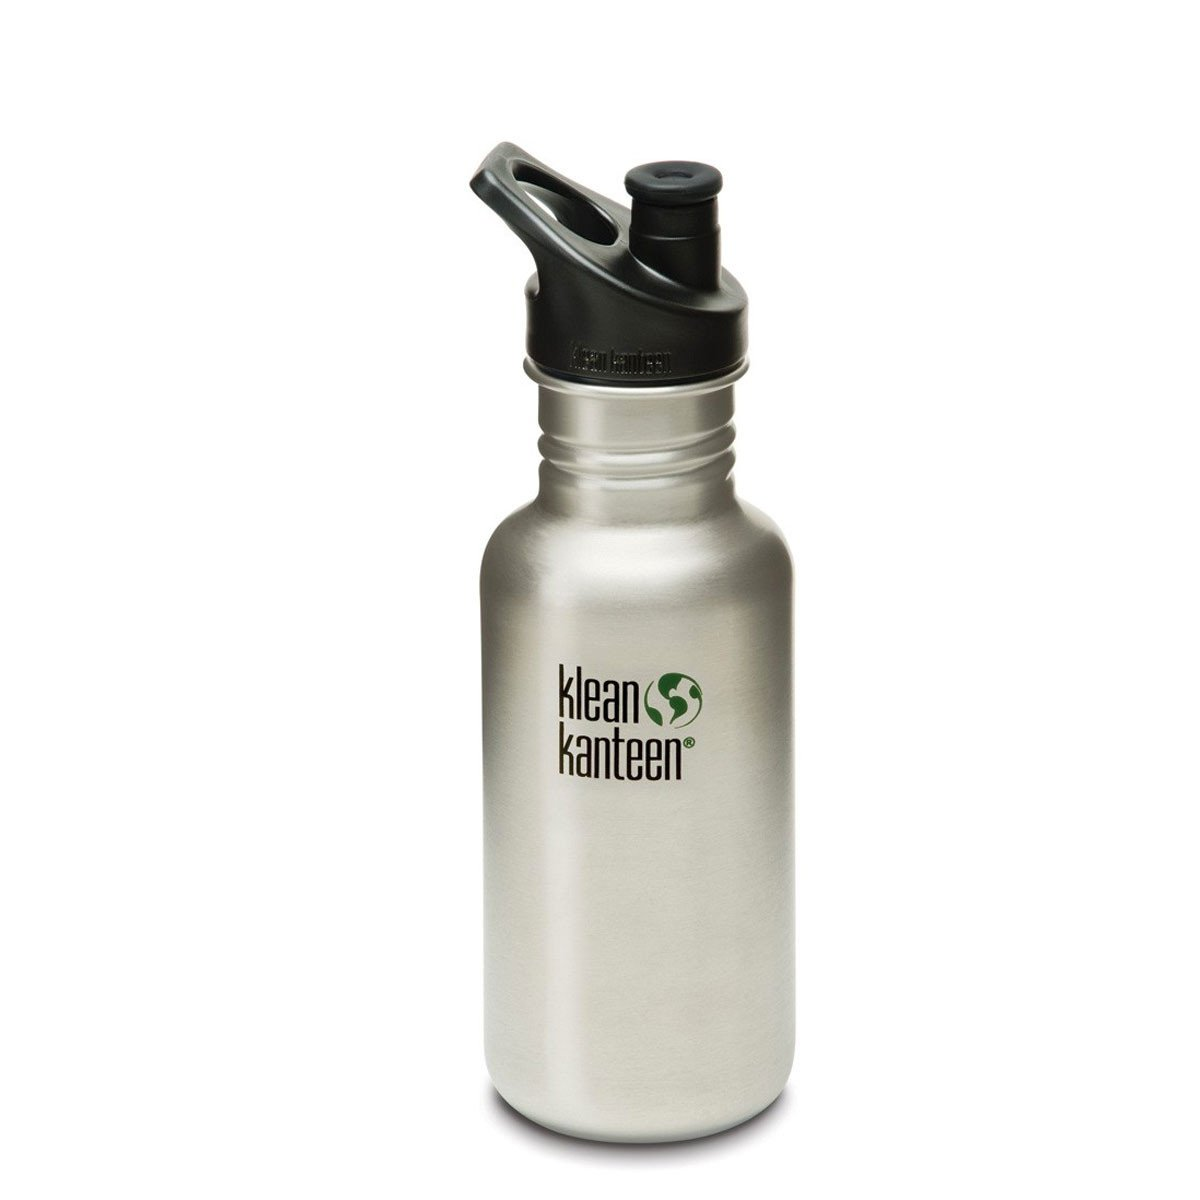 Klean Kanteen Stainless Steel Classic Water Bottle  532ml 18oz / Brushed Stainless - Klean Kanteen - Little Earth Nest - 27